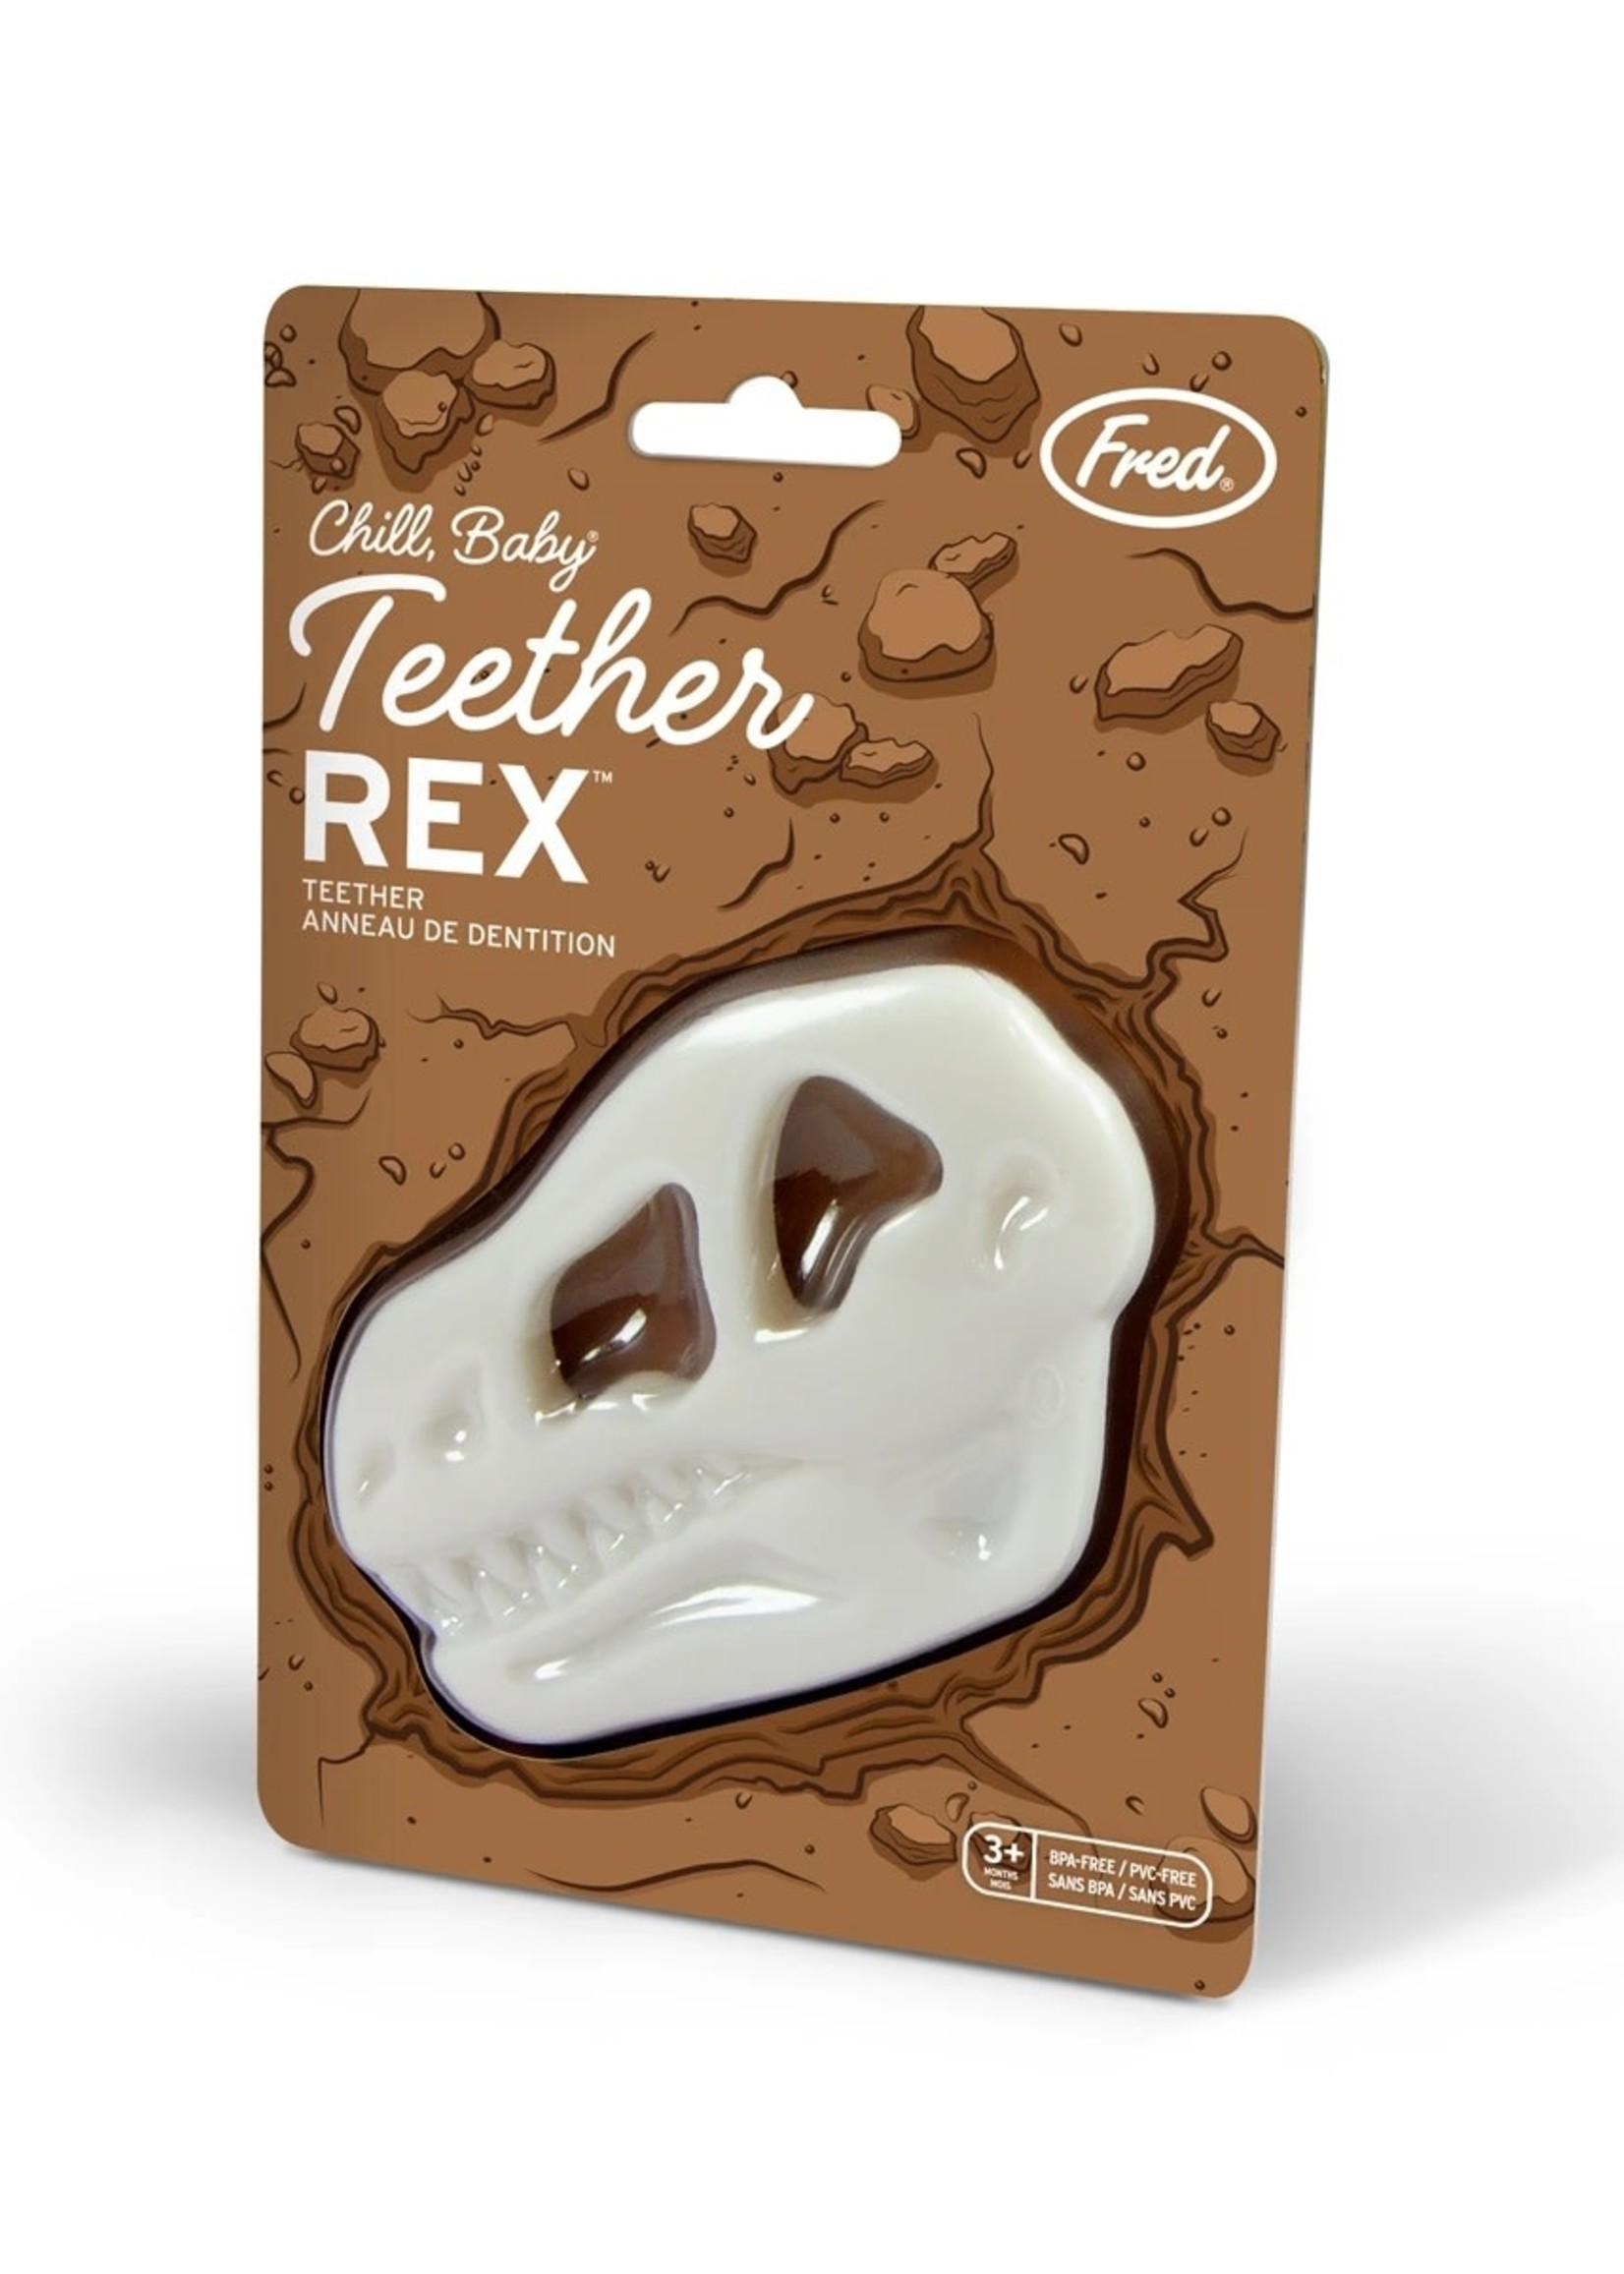 Fred & Friends CHILL BABY TEETHER REX